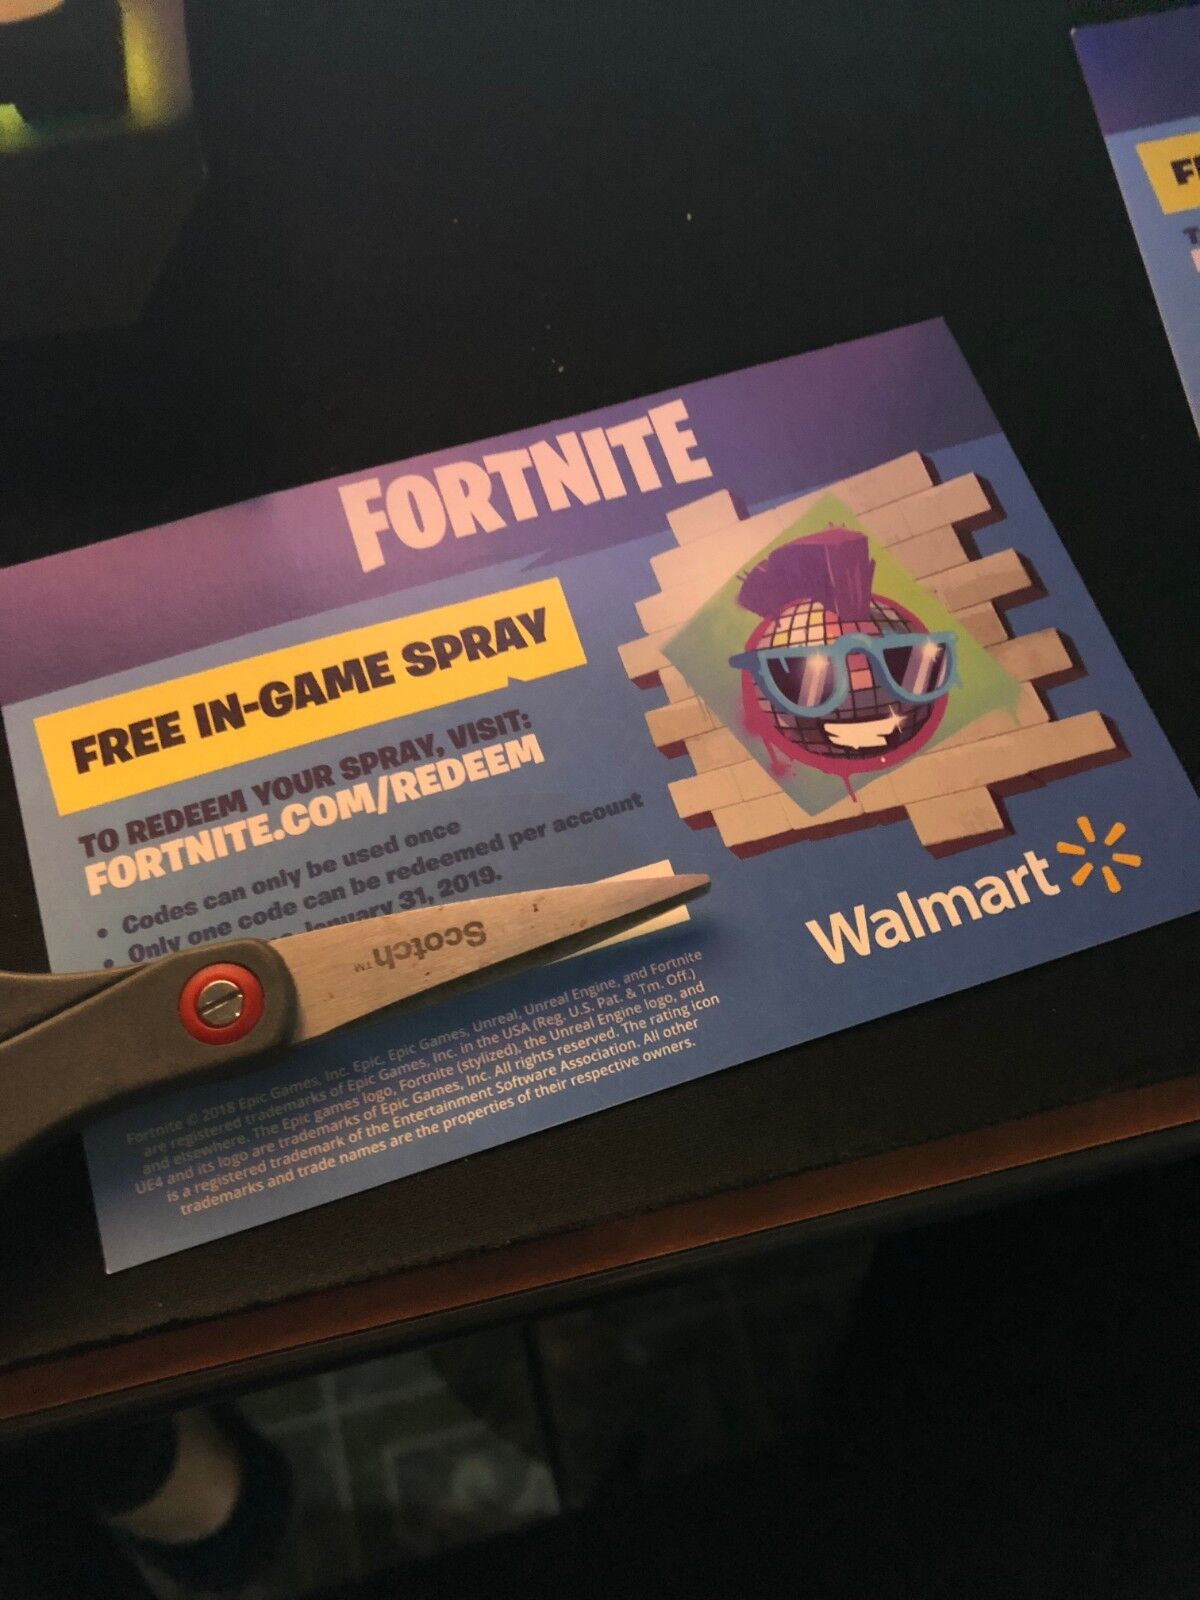 How To Get Walmart S Free Fortnite Spray